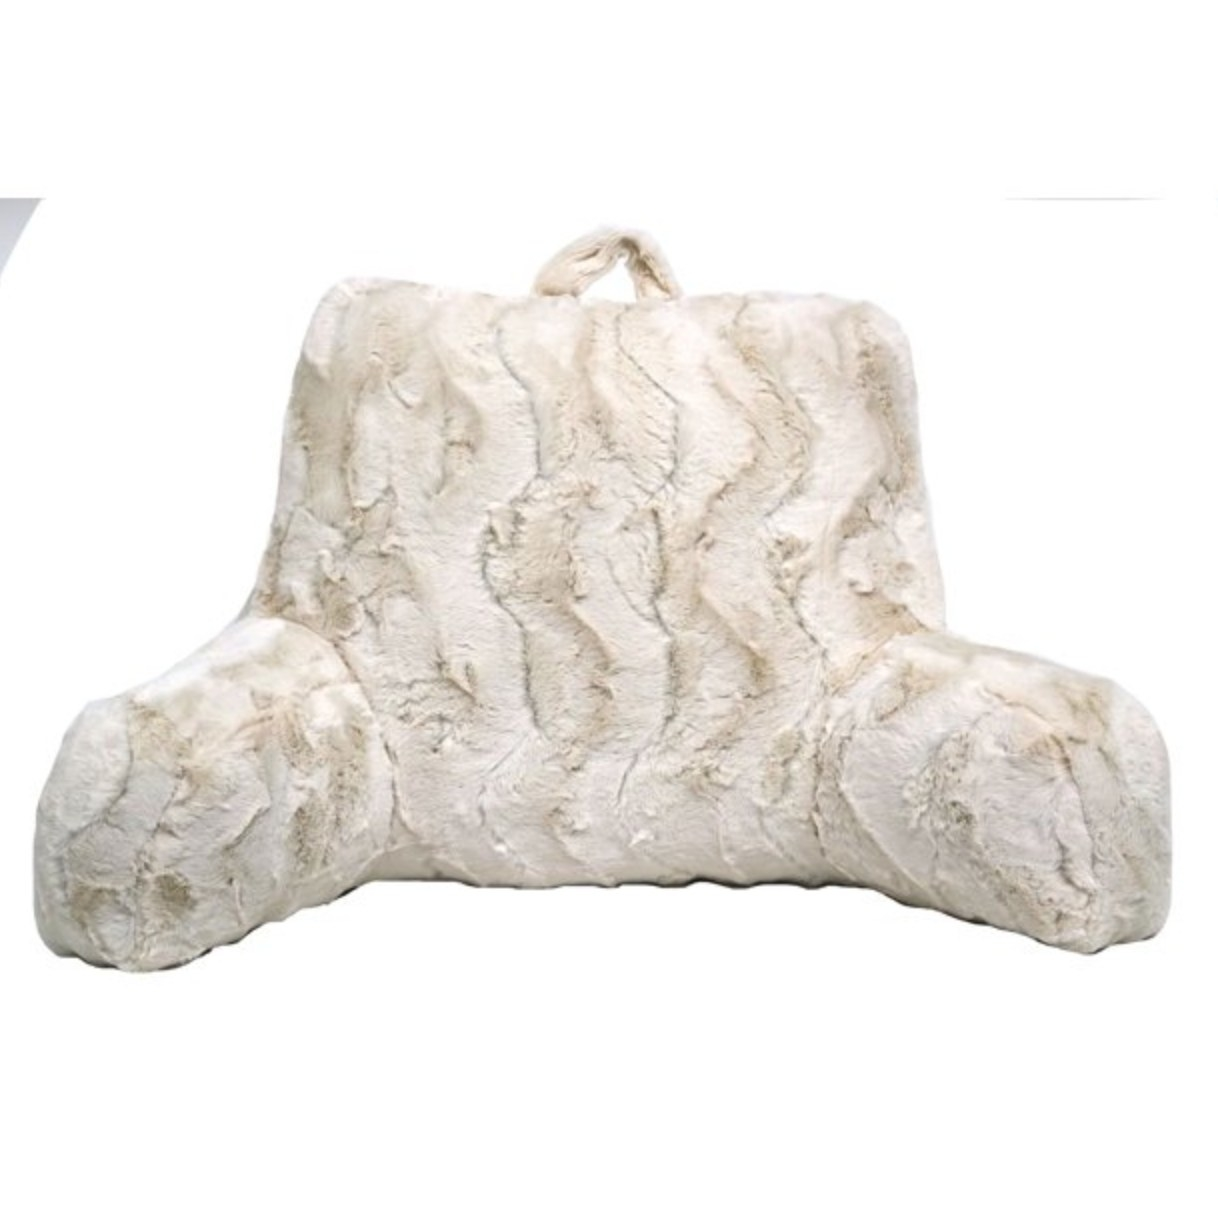 the back pillow in ivory